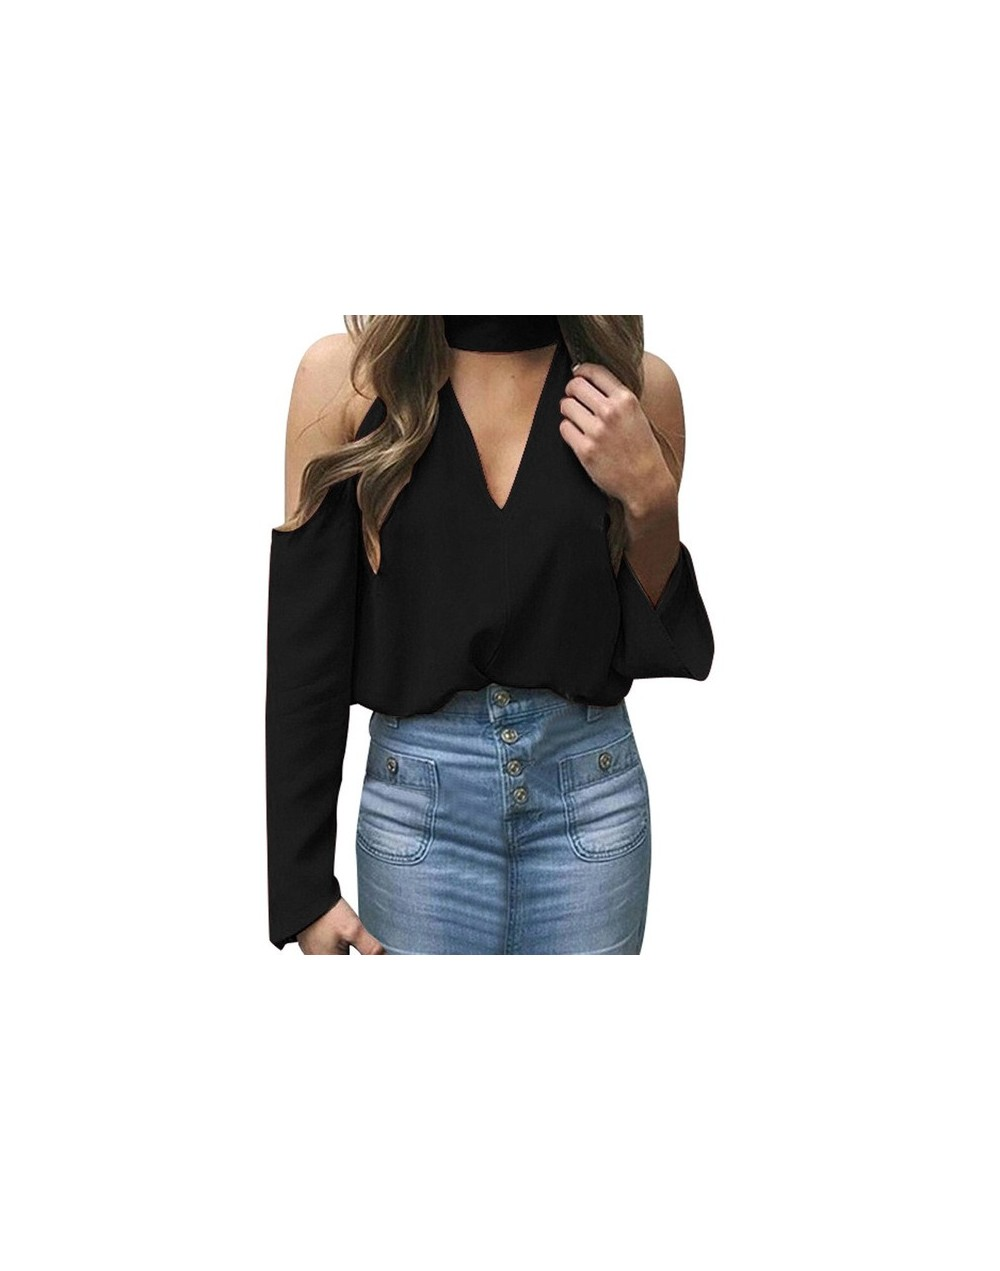 Women Long Sleeve T-shirt Sexy Off the Shoulder Halter V-neck vogue style female strapless long sleeve hanging neck clothing...